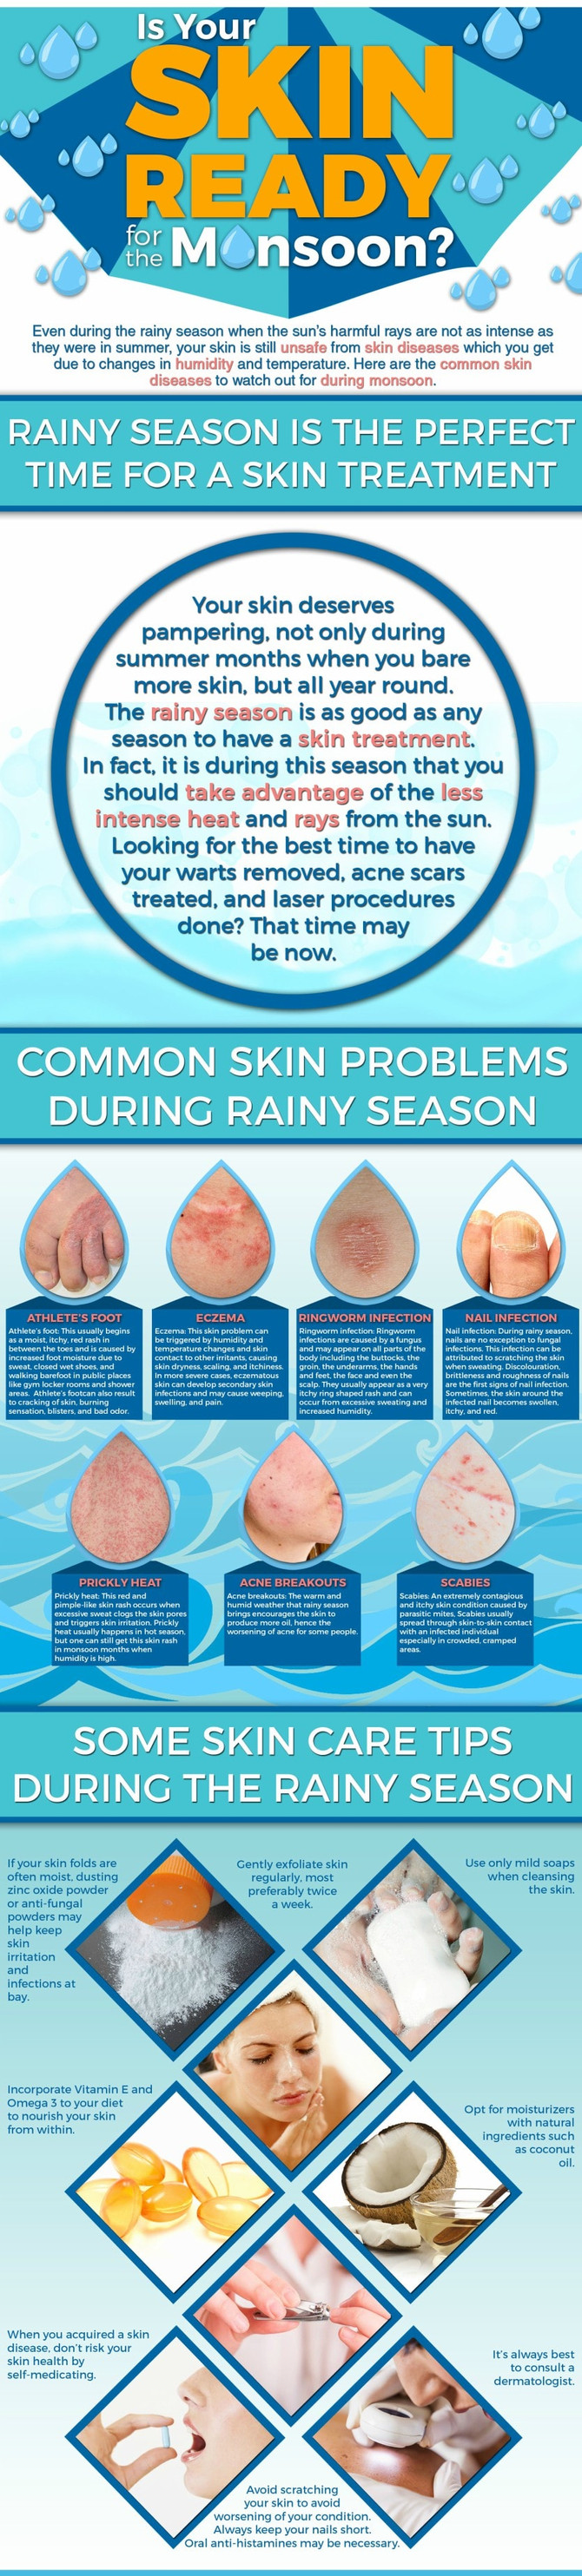 Skin Care during Monsoons